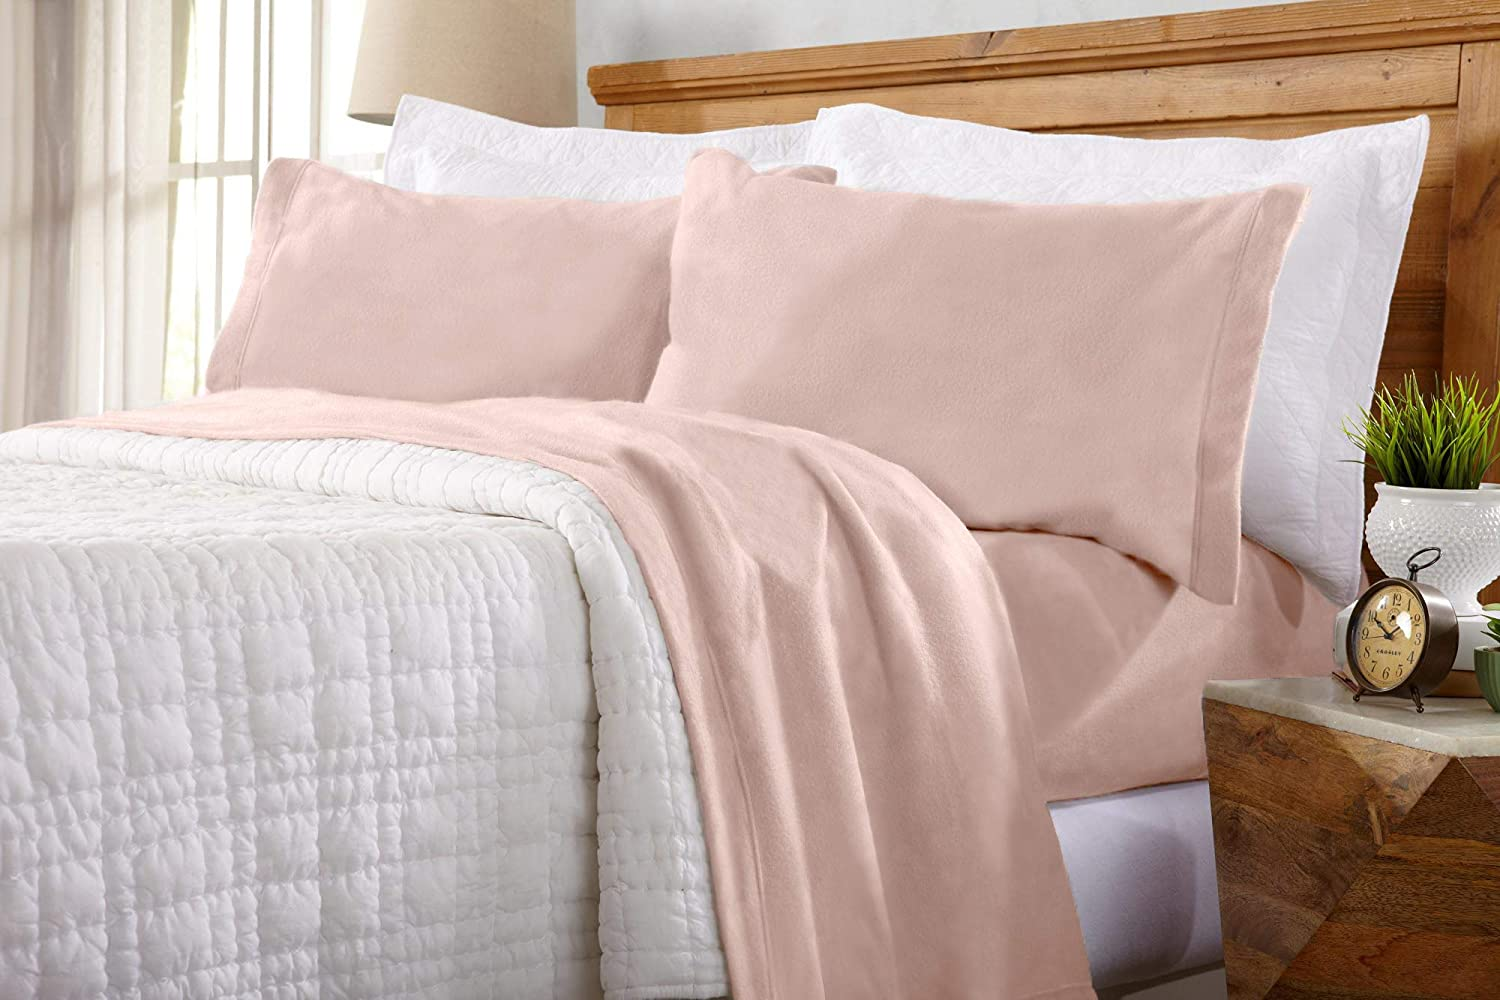 Home Fashion Designs Maya Collection Super Soft Extra Plush Fleece Sheet Set. Cozy, Warm, Durable, Smooth, Breathable Winter Sheets in Solid Colors (Full, Blush Pink)